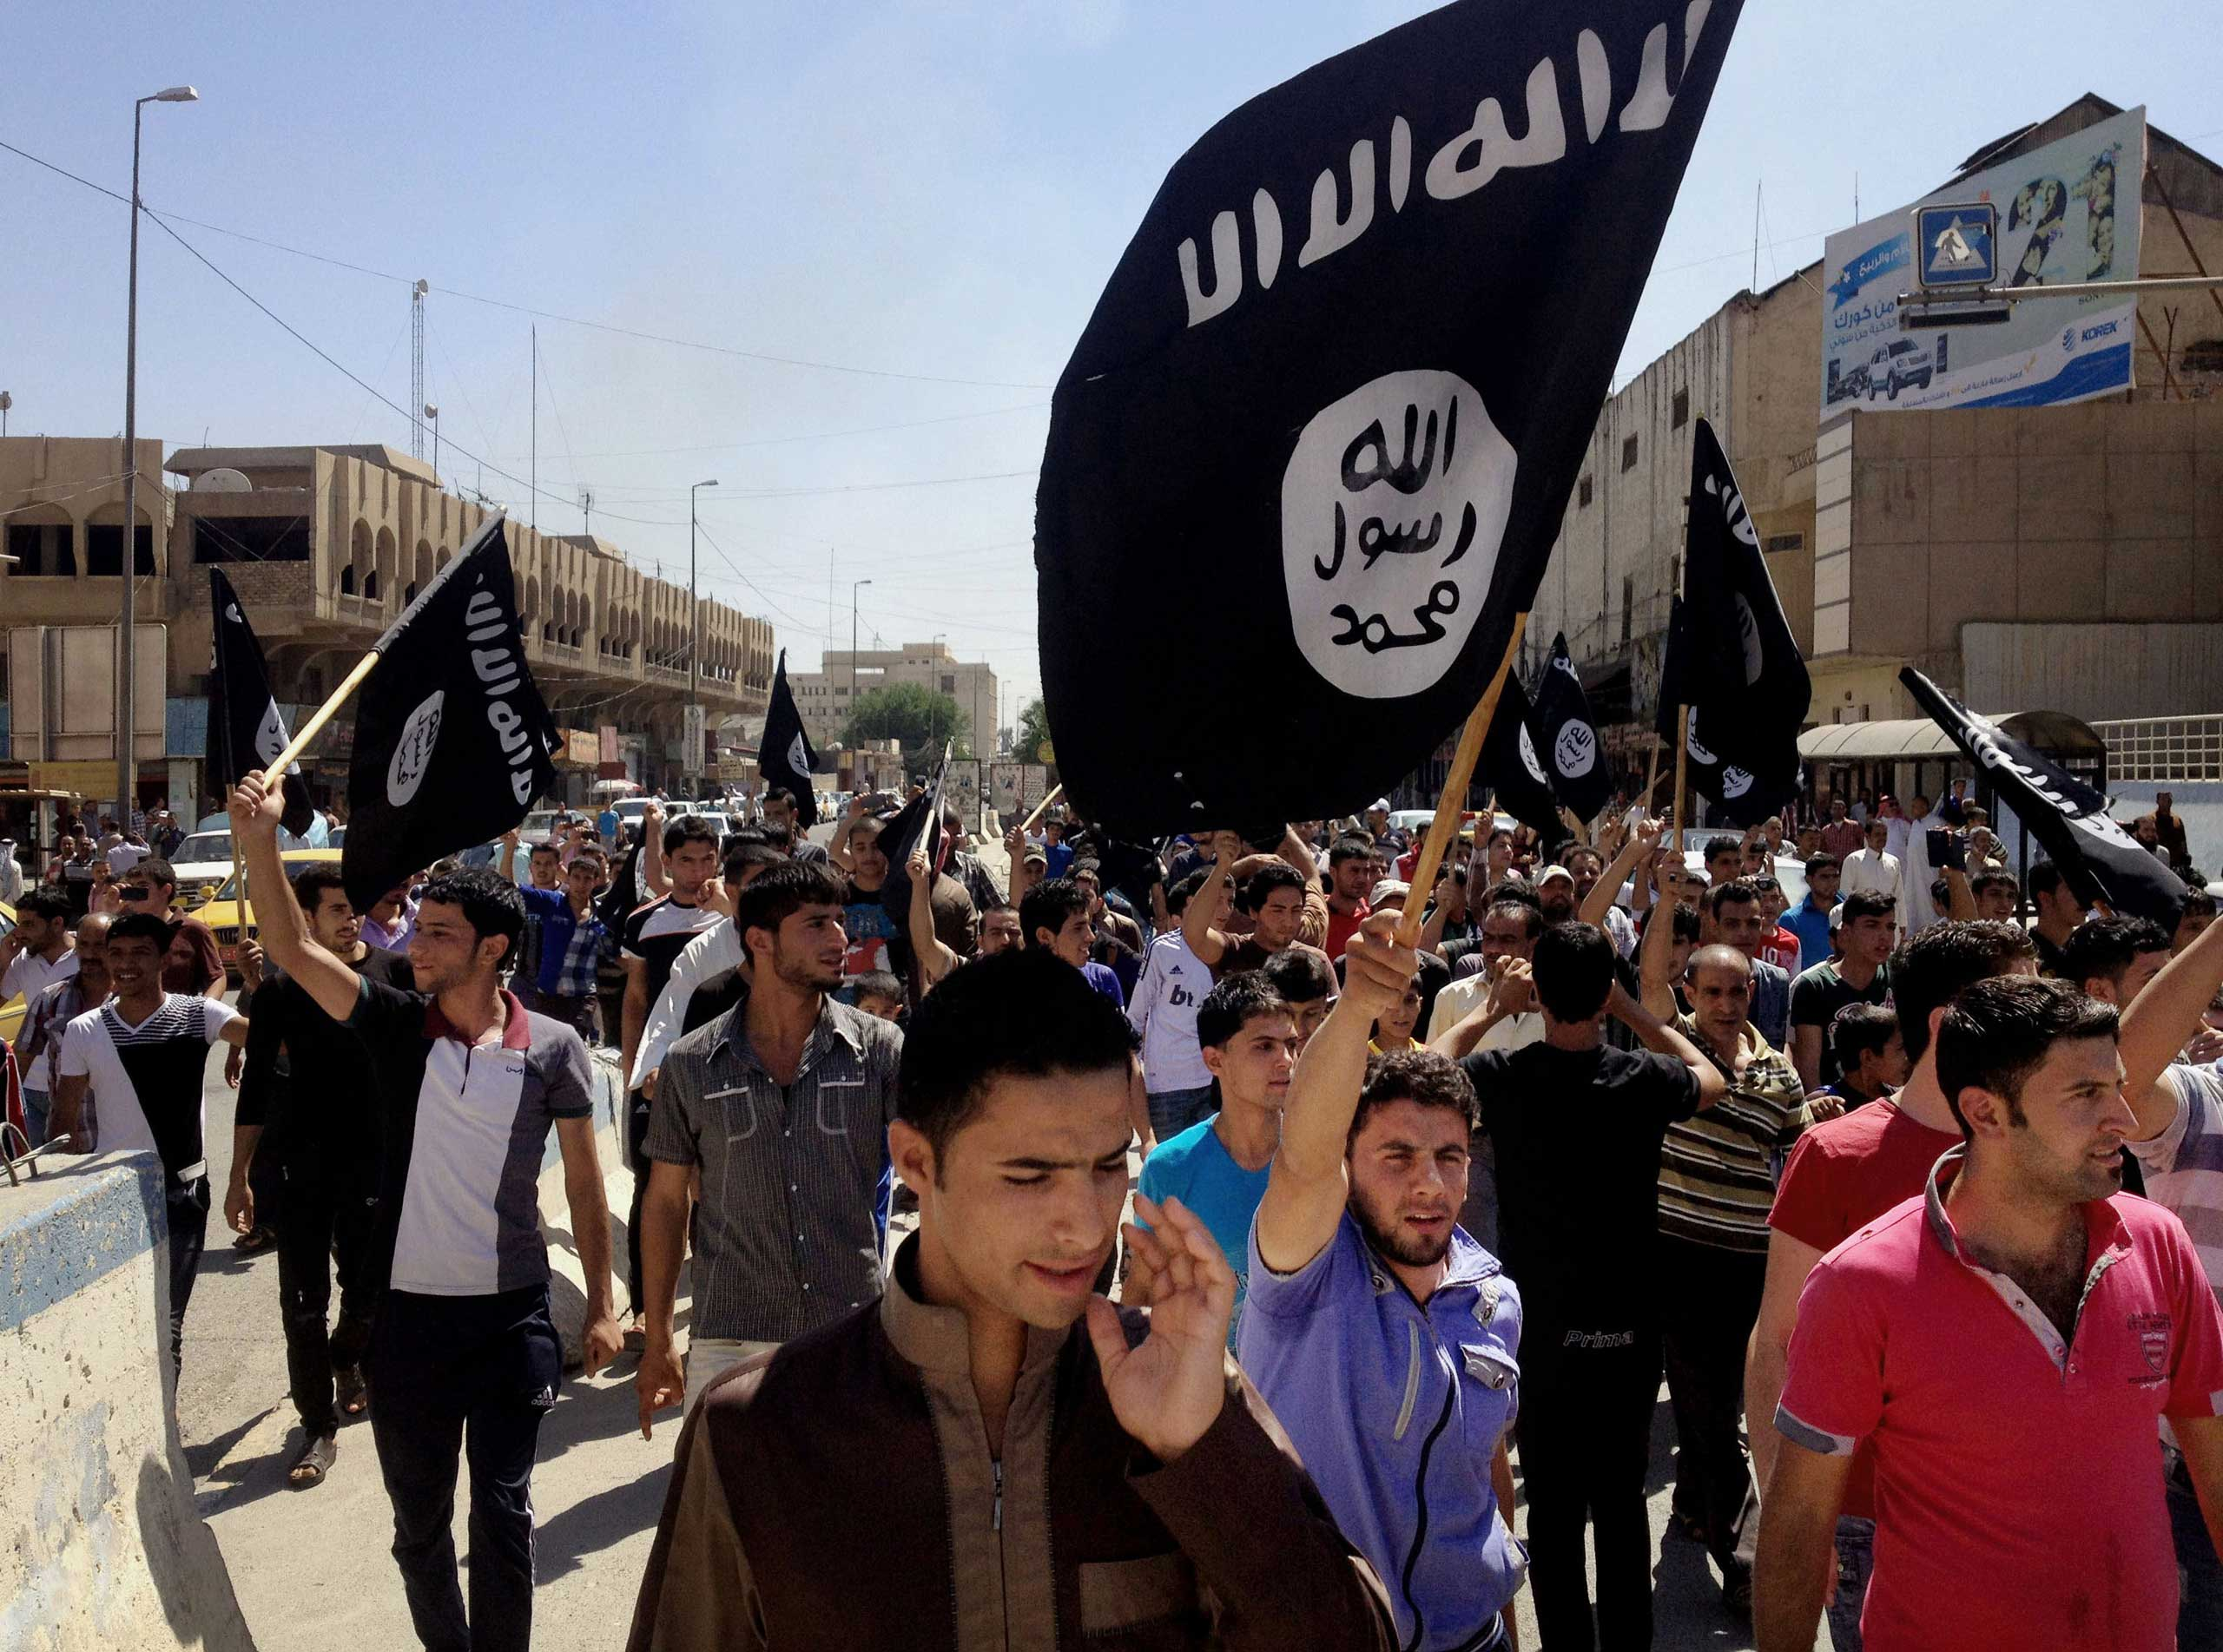 Demonstrators chant ISIS slogans as they wave the group's flags in front of the provincial government headquarters in Mosul, June 2014.